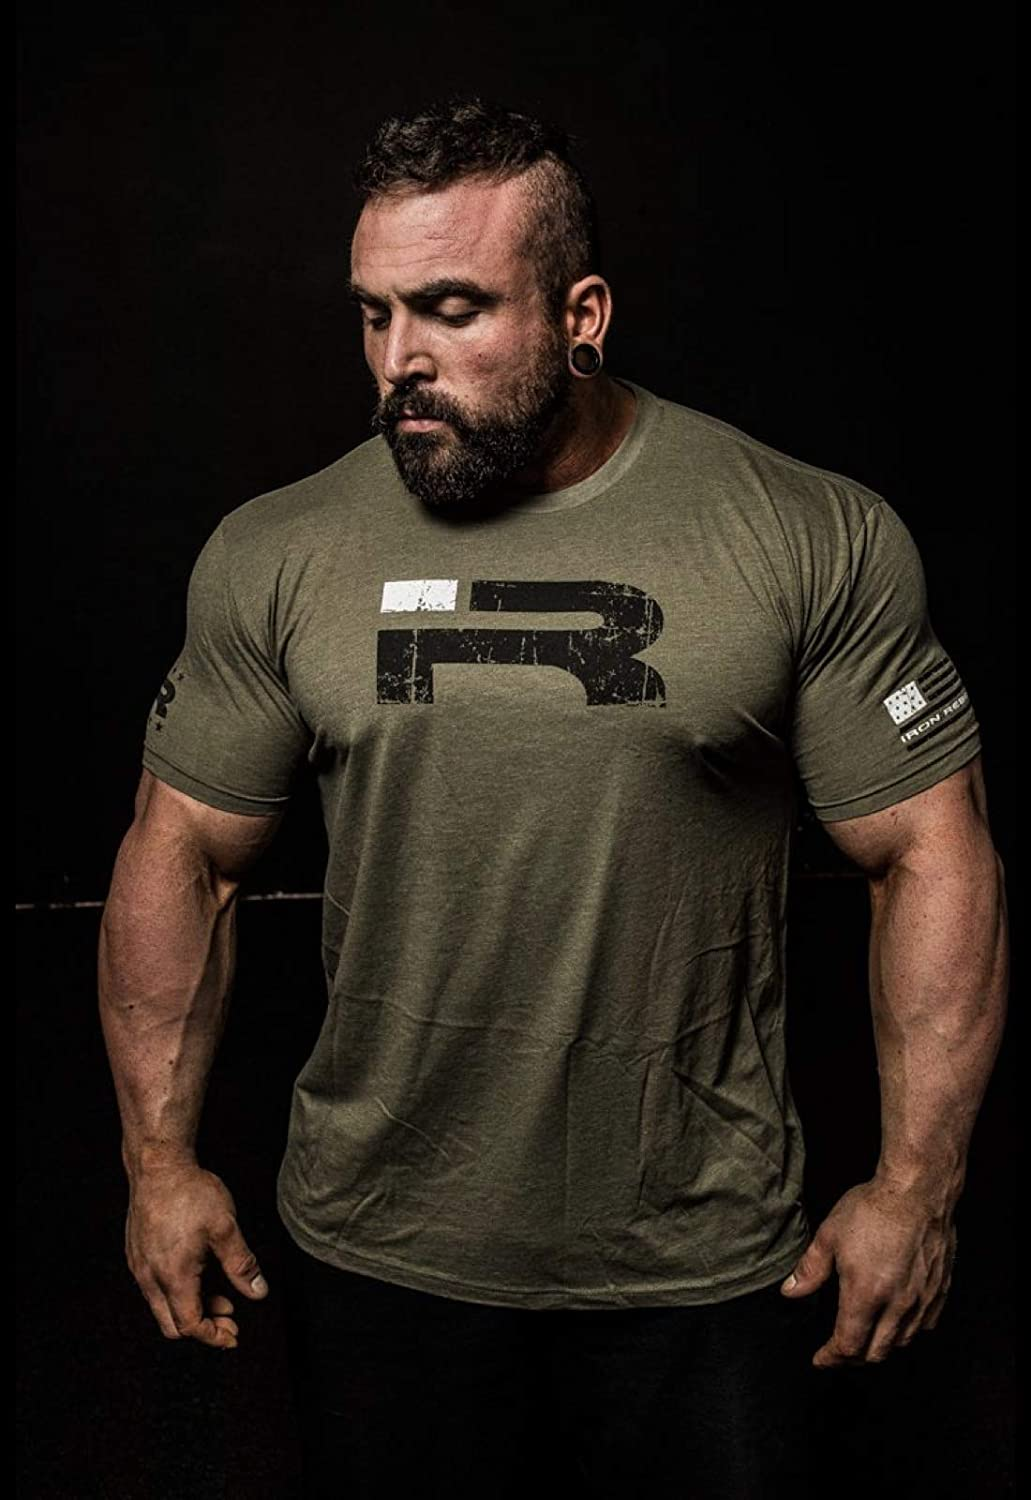 2c800c8a6 Iron Rebel - Ready for War - Men's T-shirt (Army Green) -M: Amazon.co.uk:  Sports & Outdoors